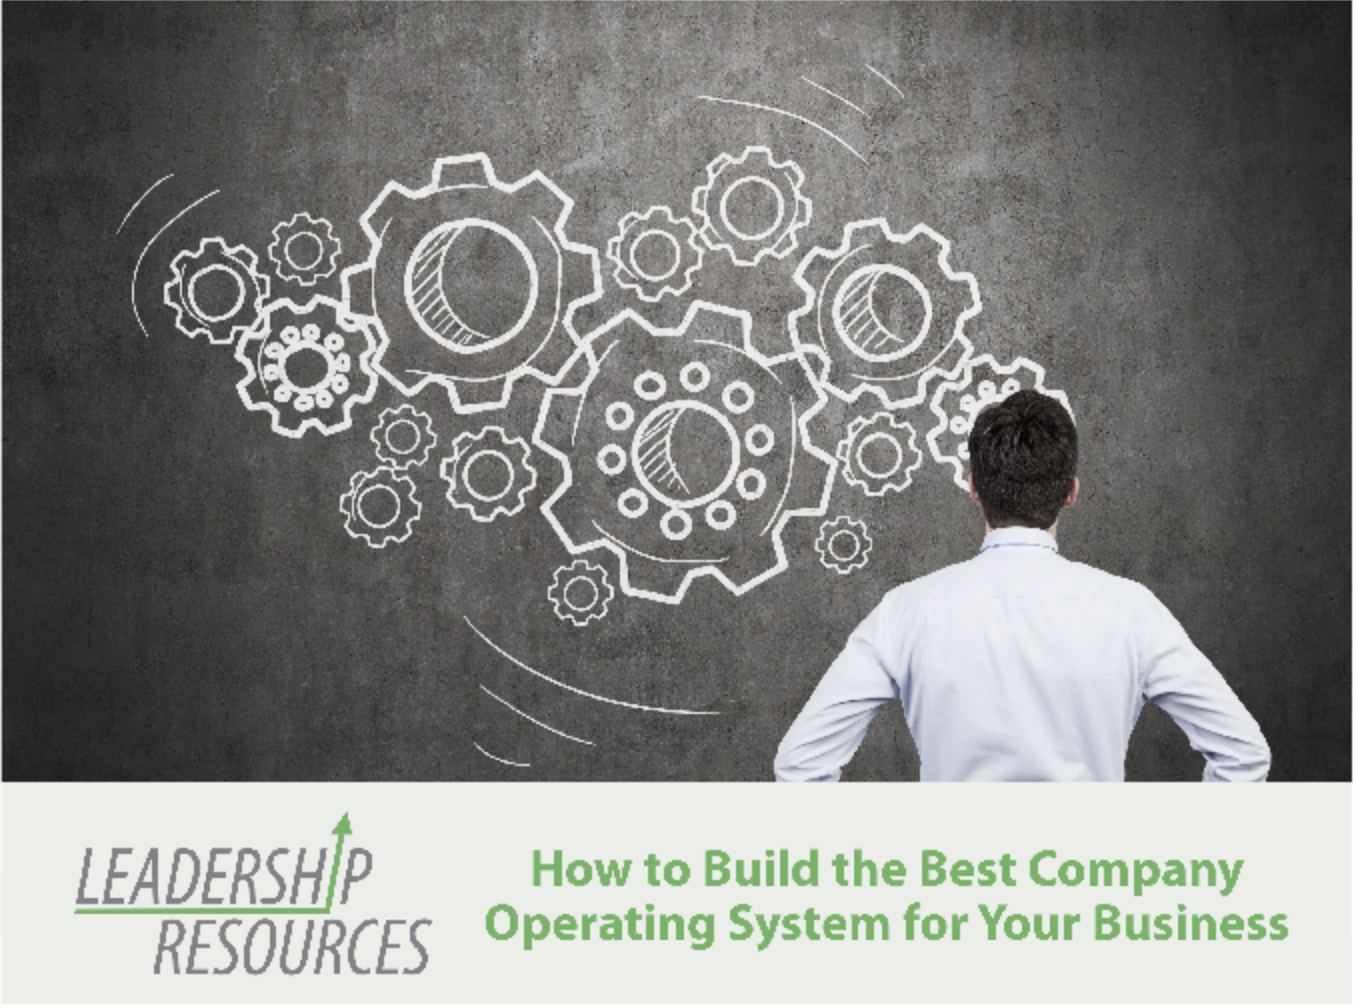 How to Build the Best Company Operating System for Your Business